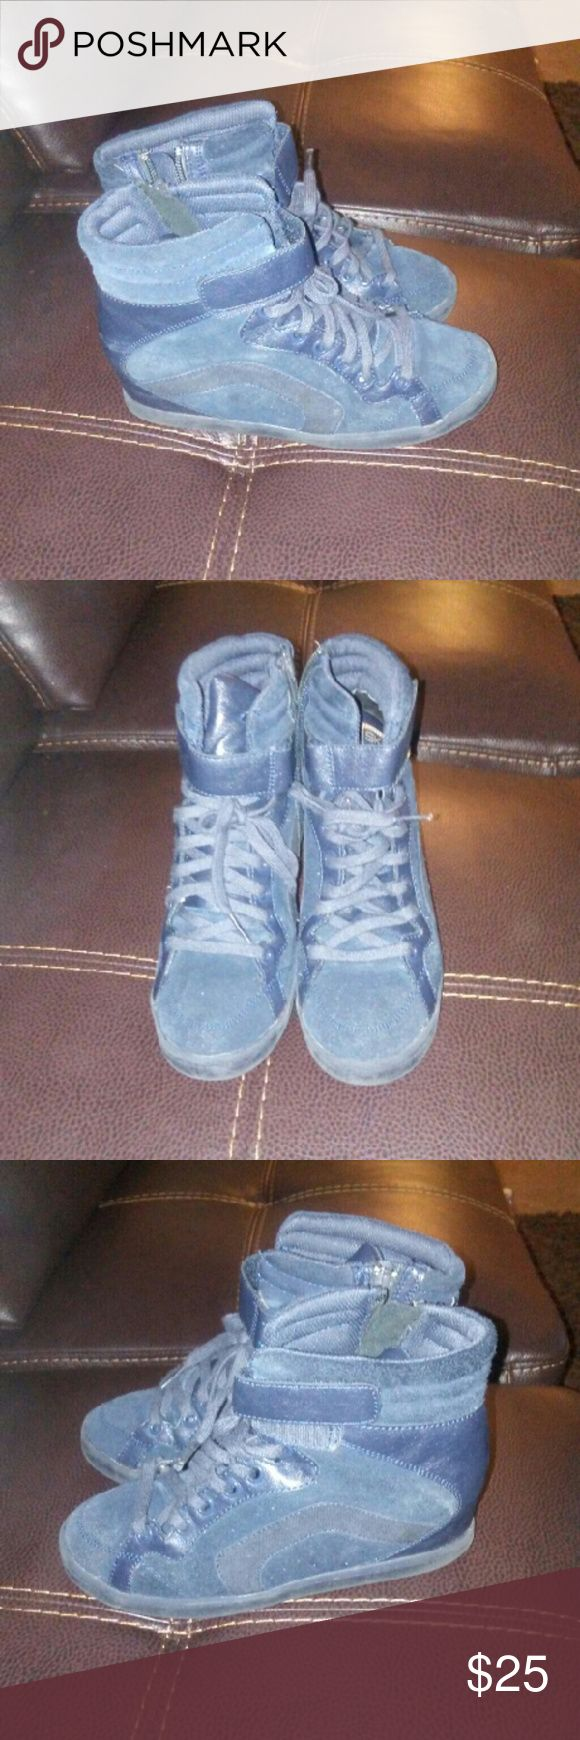 Sketchers wedge sneakers. Suede navy blue. Worn about 3 times. Skechers Shoes Sneakers